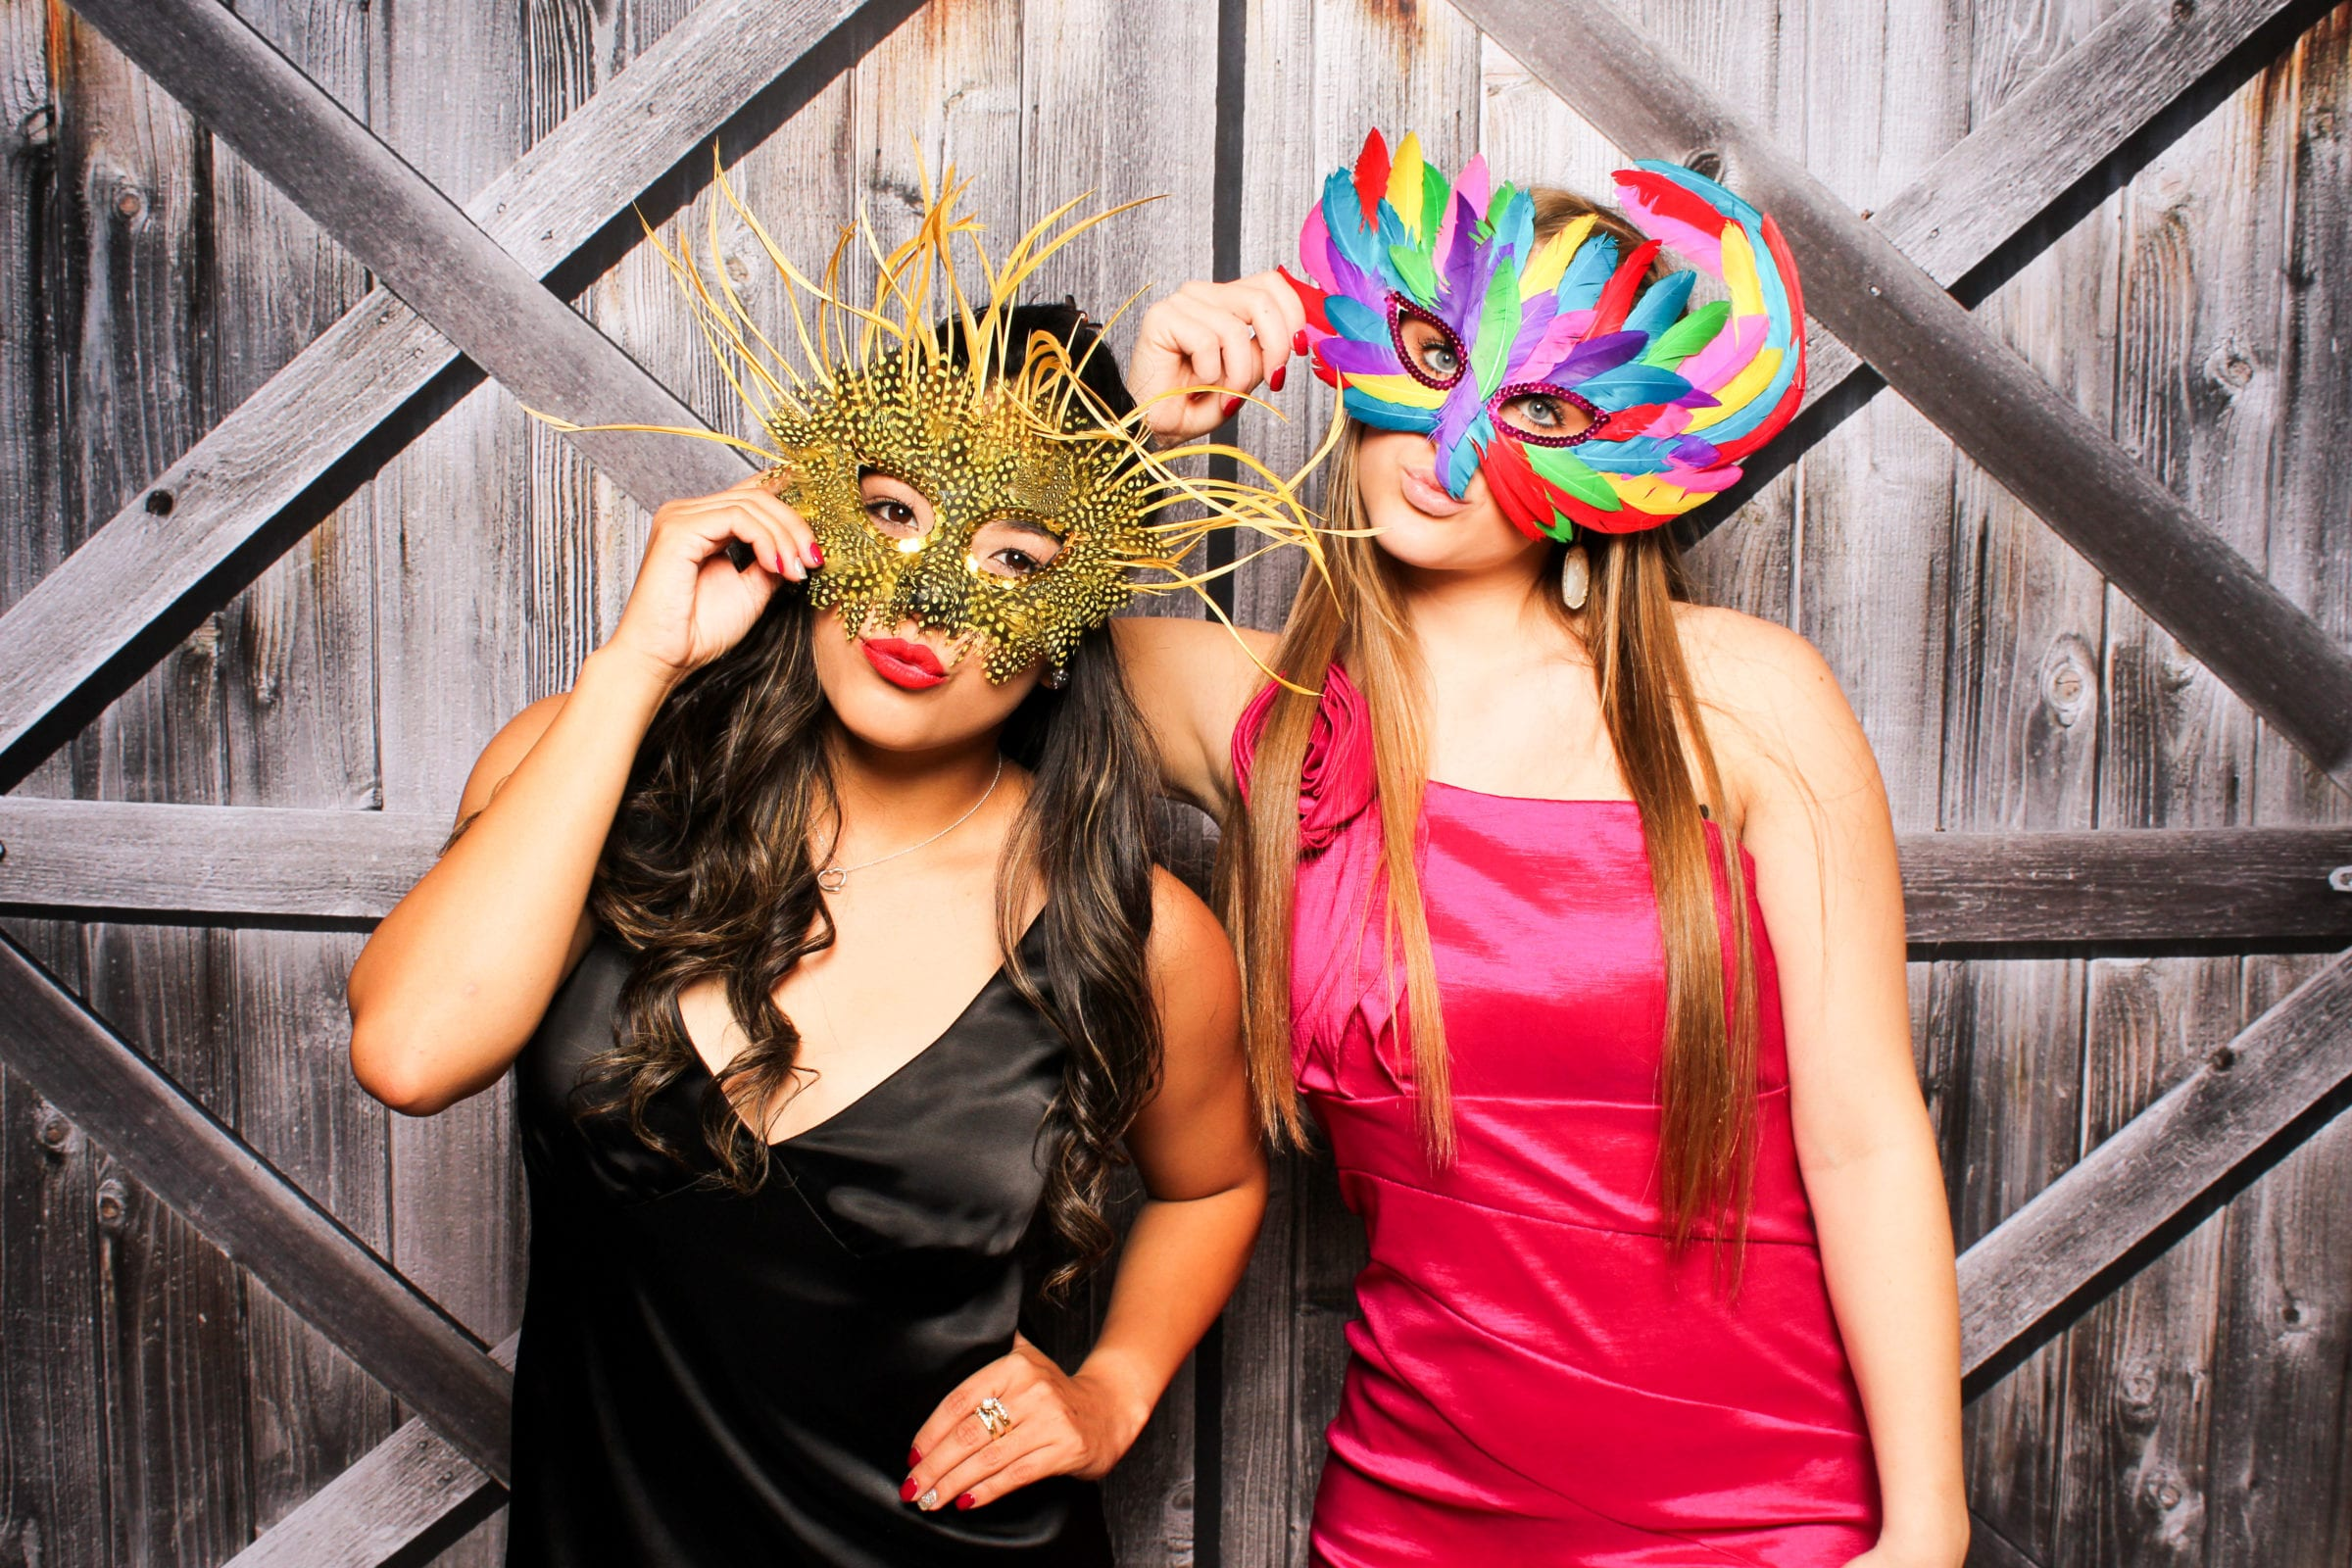 kerrville photo booth kerrville photo booth rental kerrville photo booth company